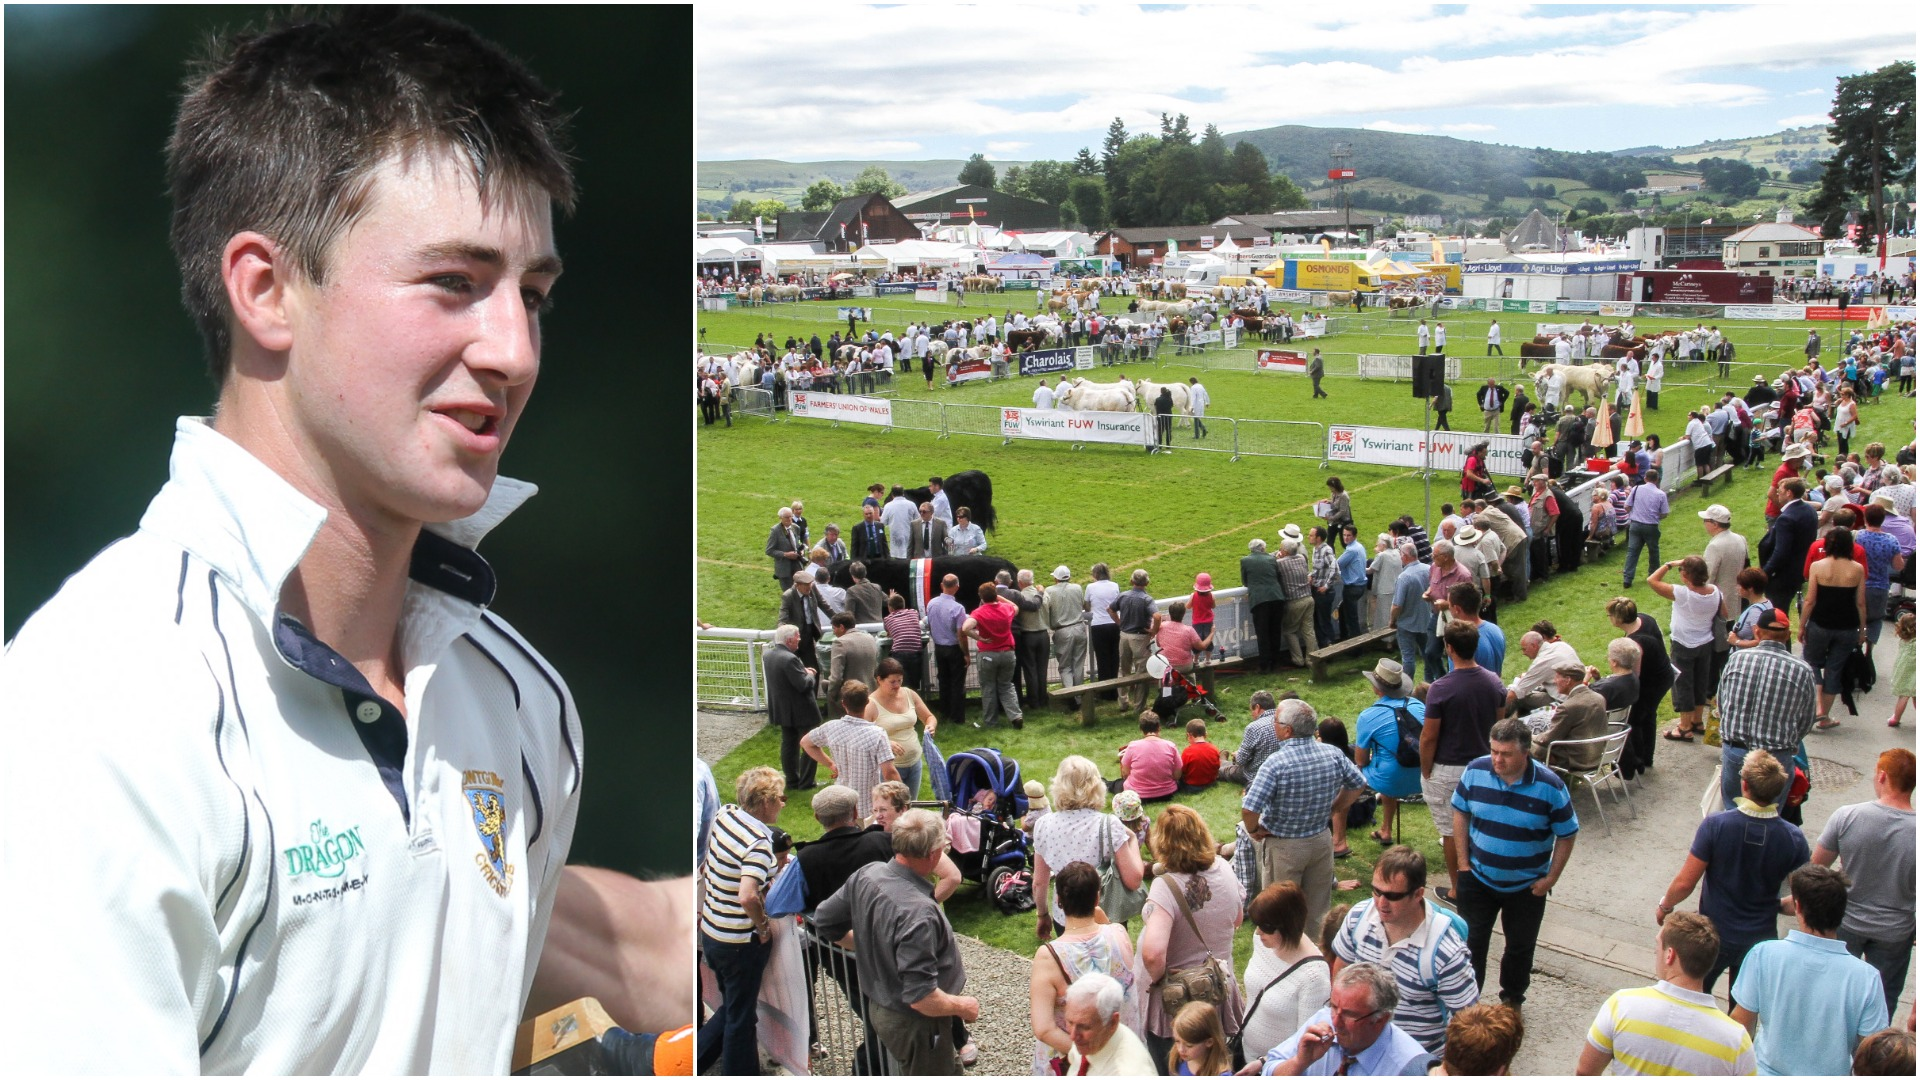 James Corfield died after attending Royal Welsh Show